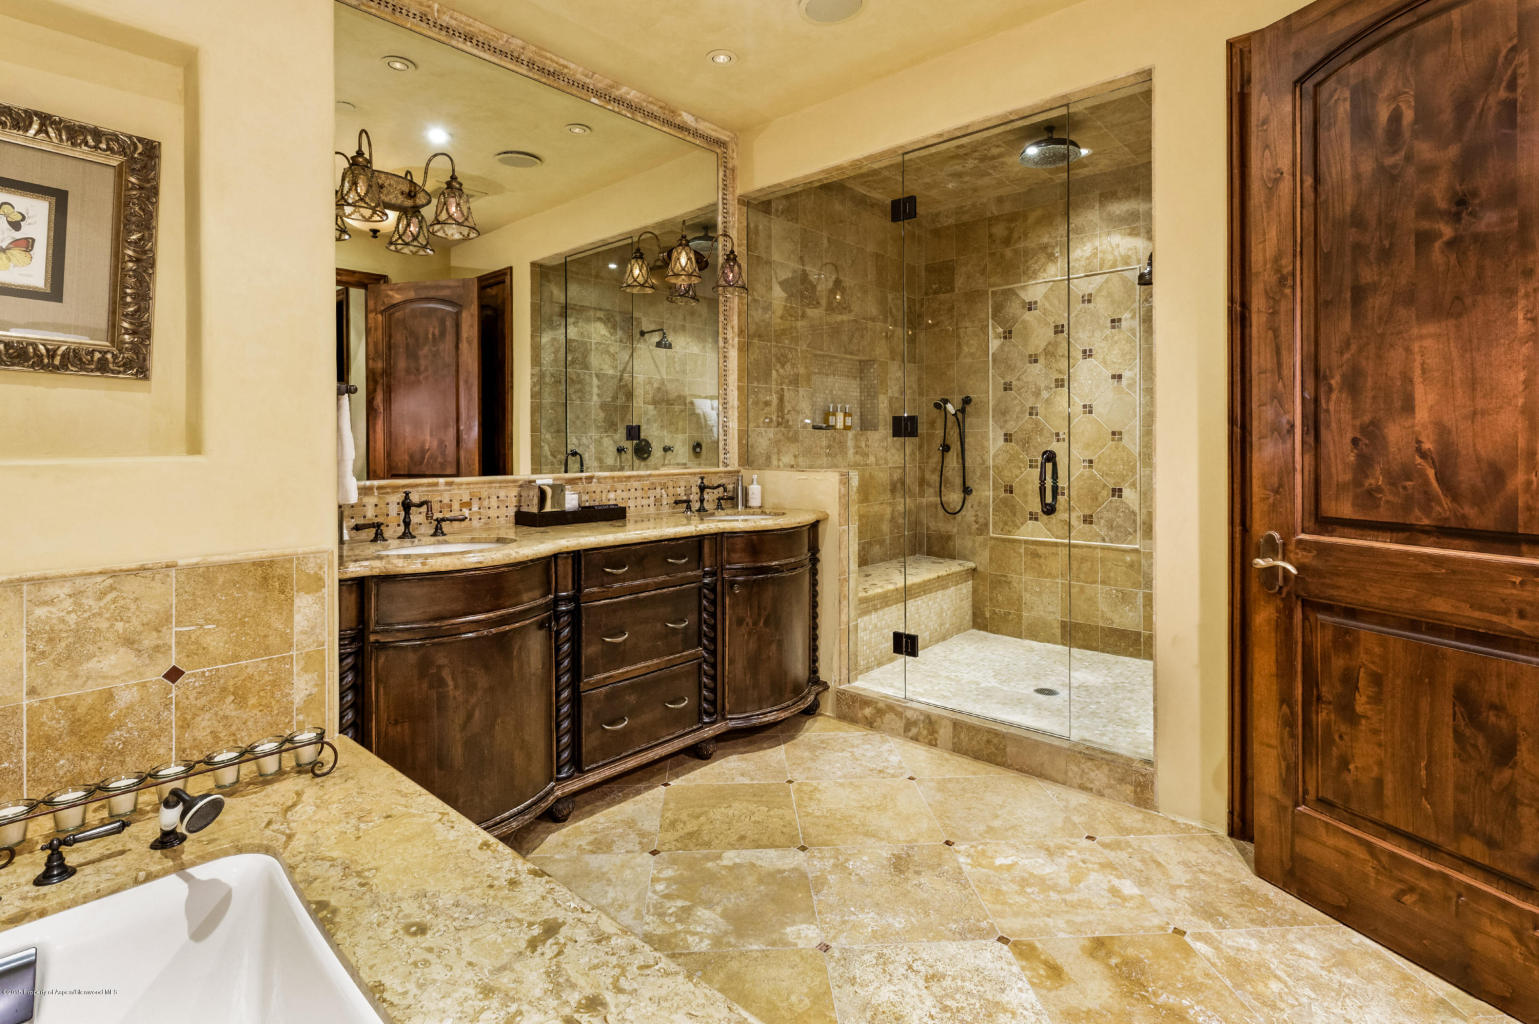 The expansive master bath.